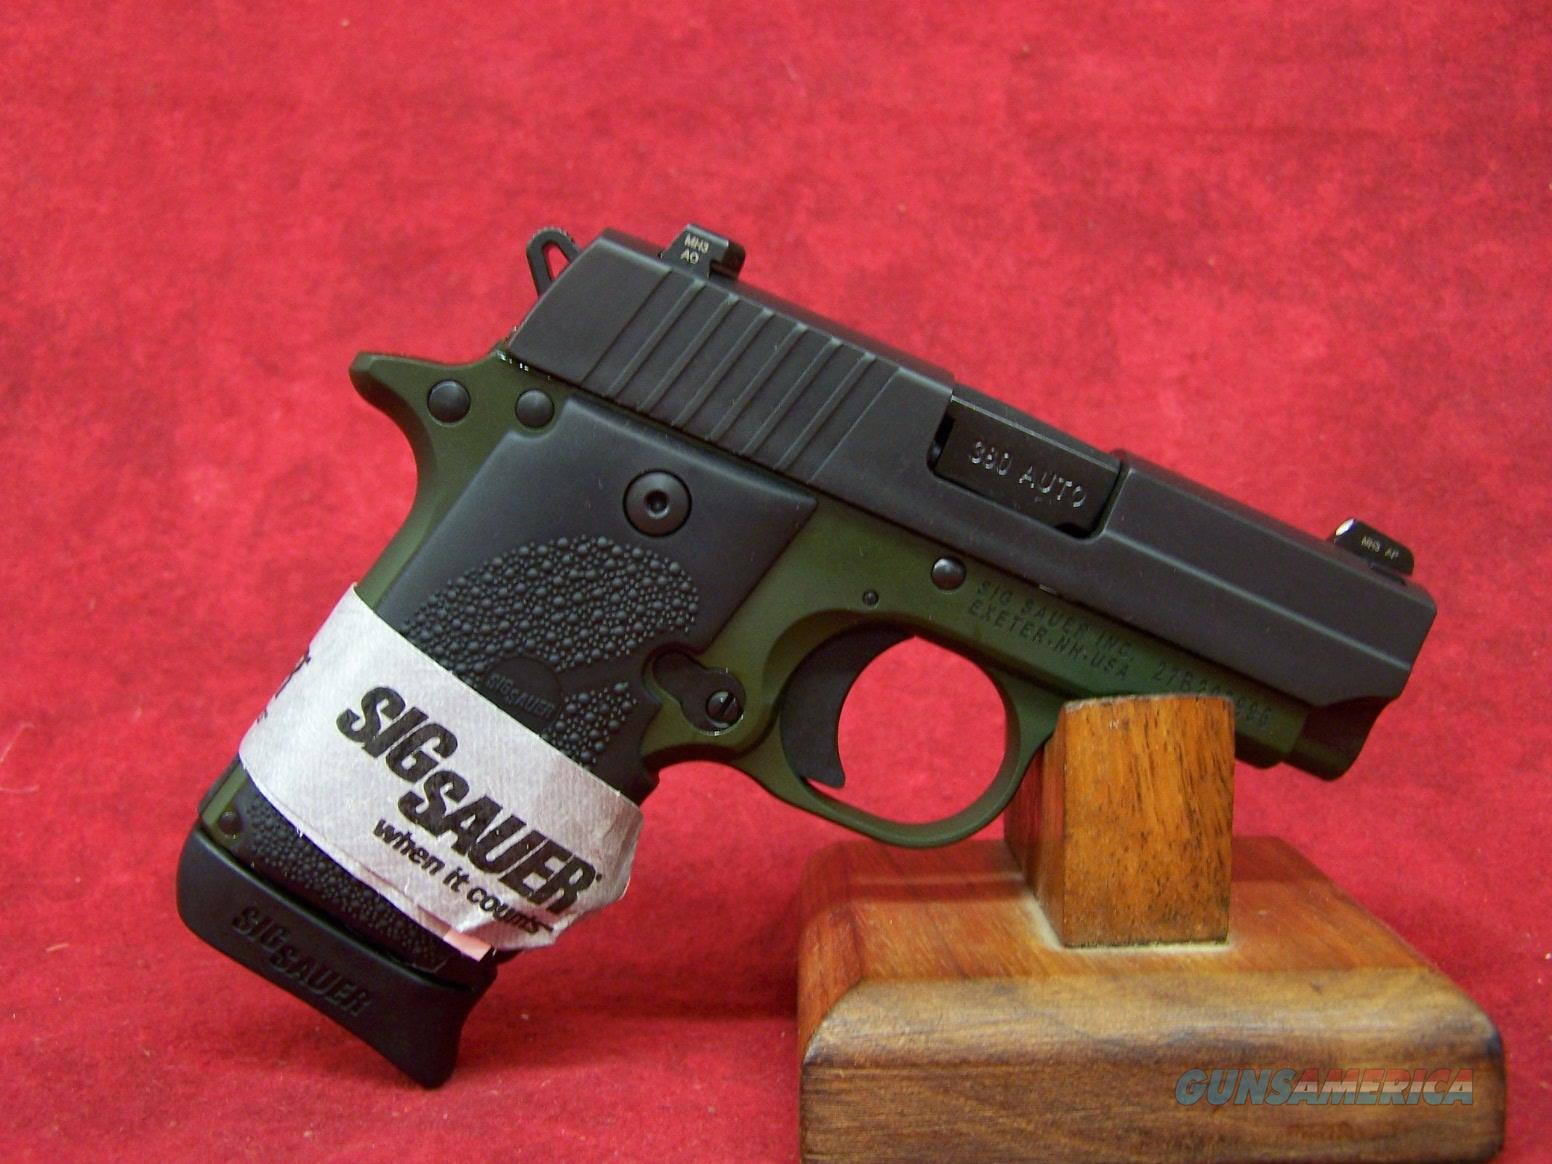 SIG SAUER P238 ARMY 380ACP ARMY GREEN NIT/GRN SLITE (238-380-AGF)  Guns > Pistols > Sig - Sauer/Sigarms Pistols > P238